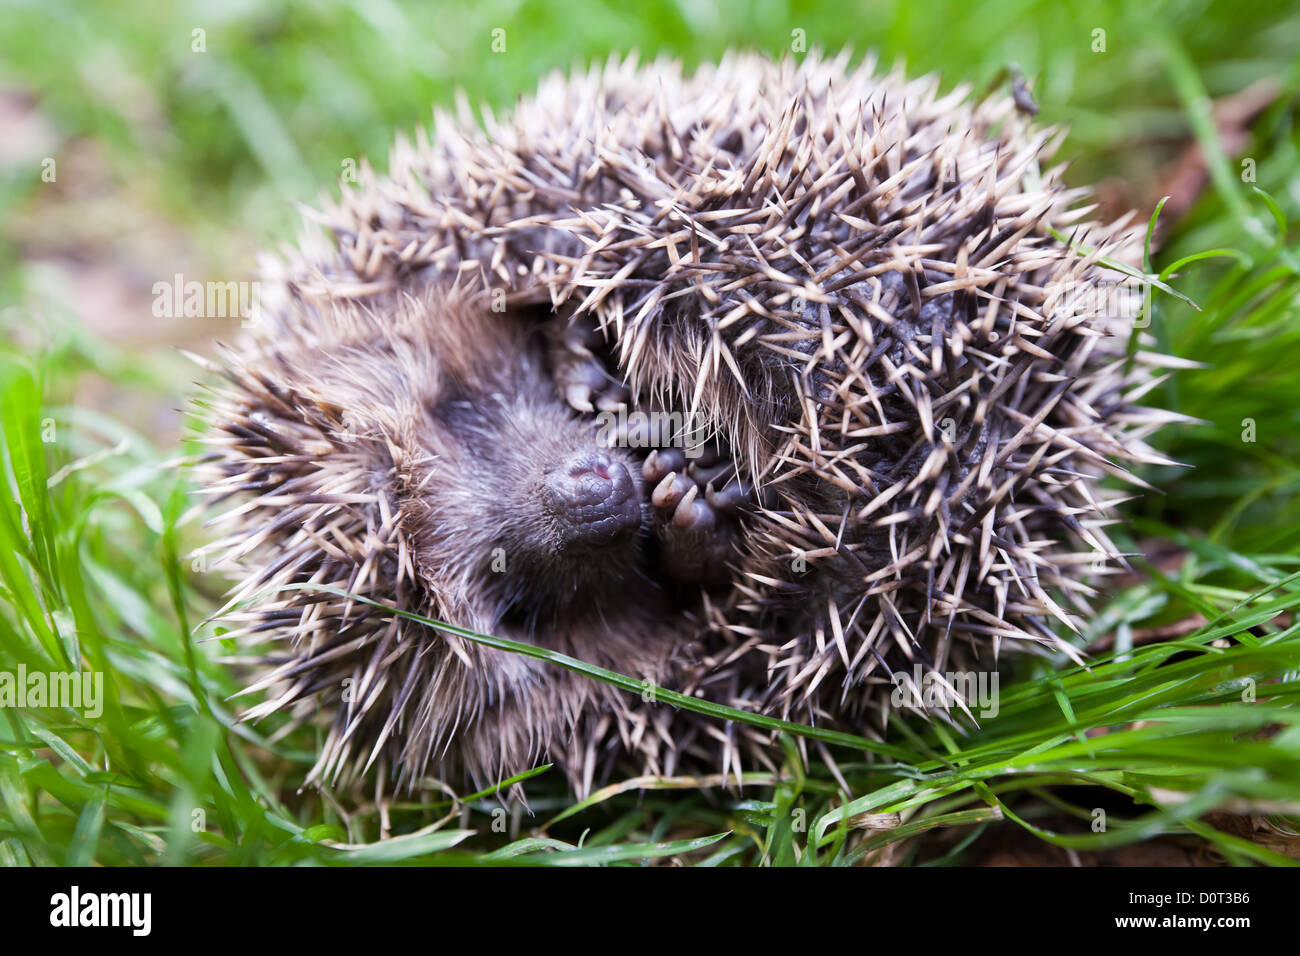 Scaring hedgehog rolled up into a ball and laying on the back. - Stock Image